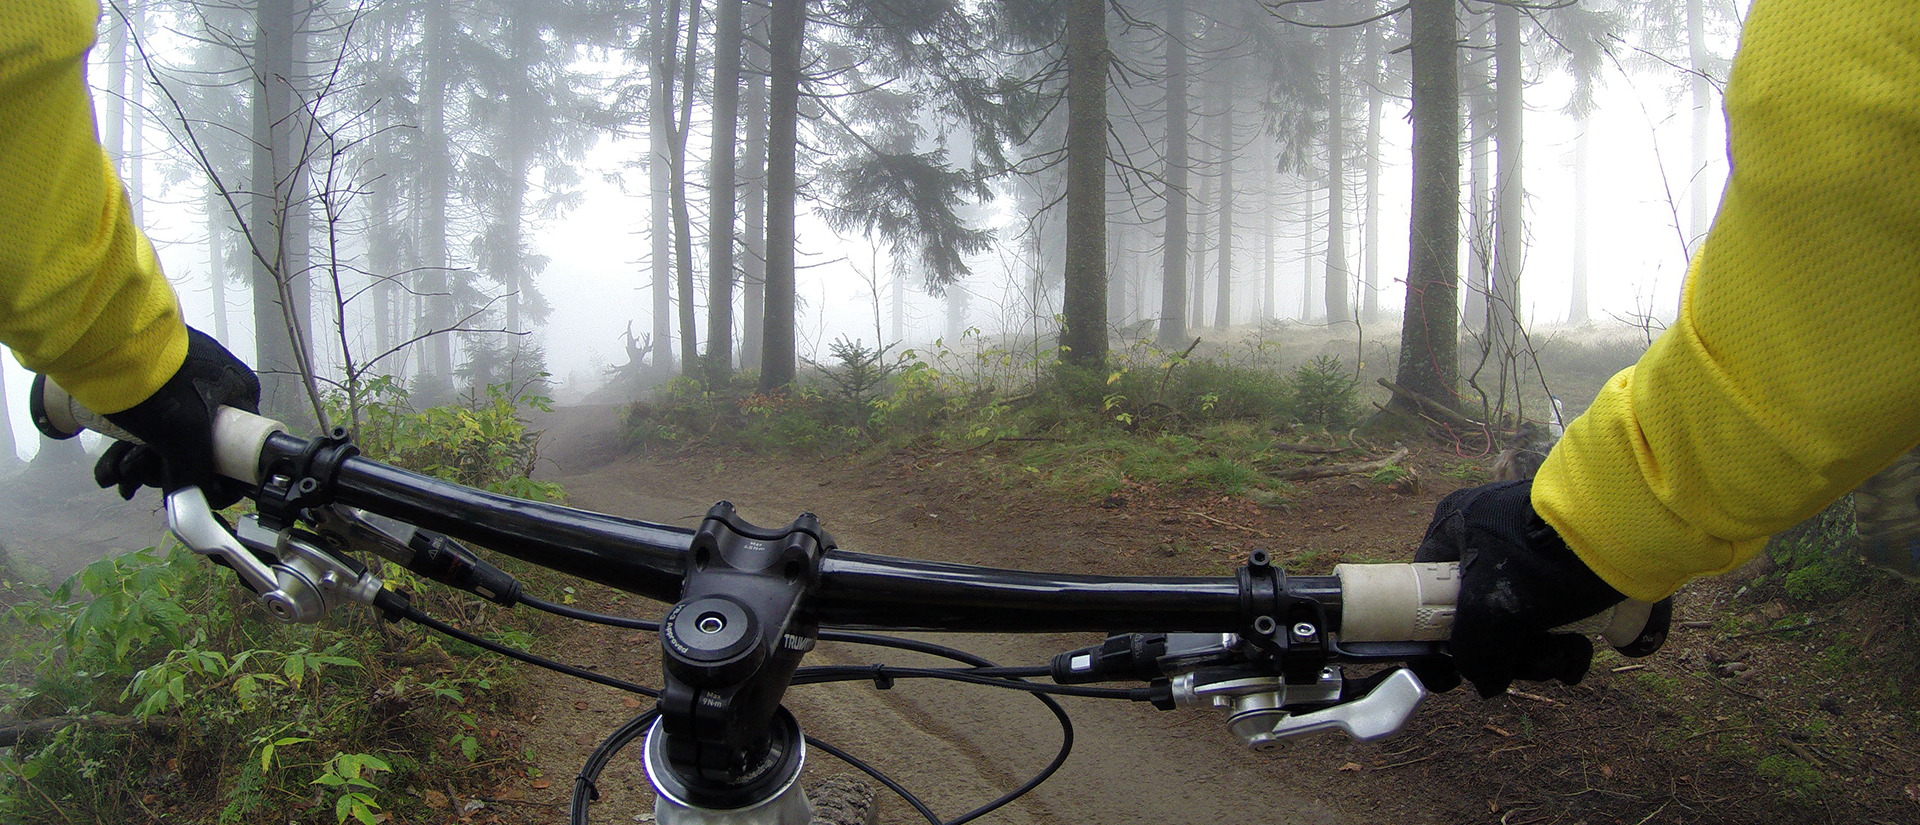 Mountainbike2_1920x825